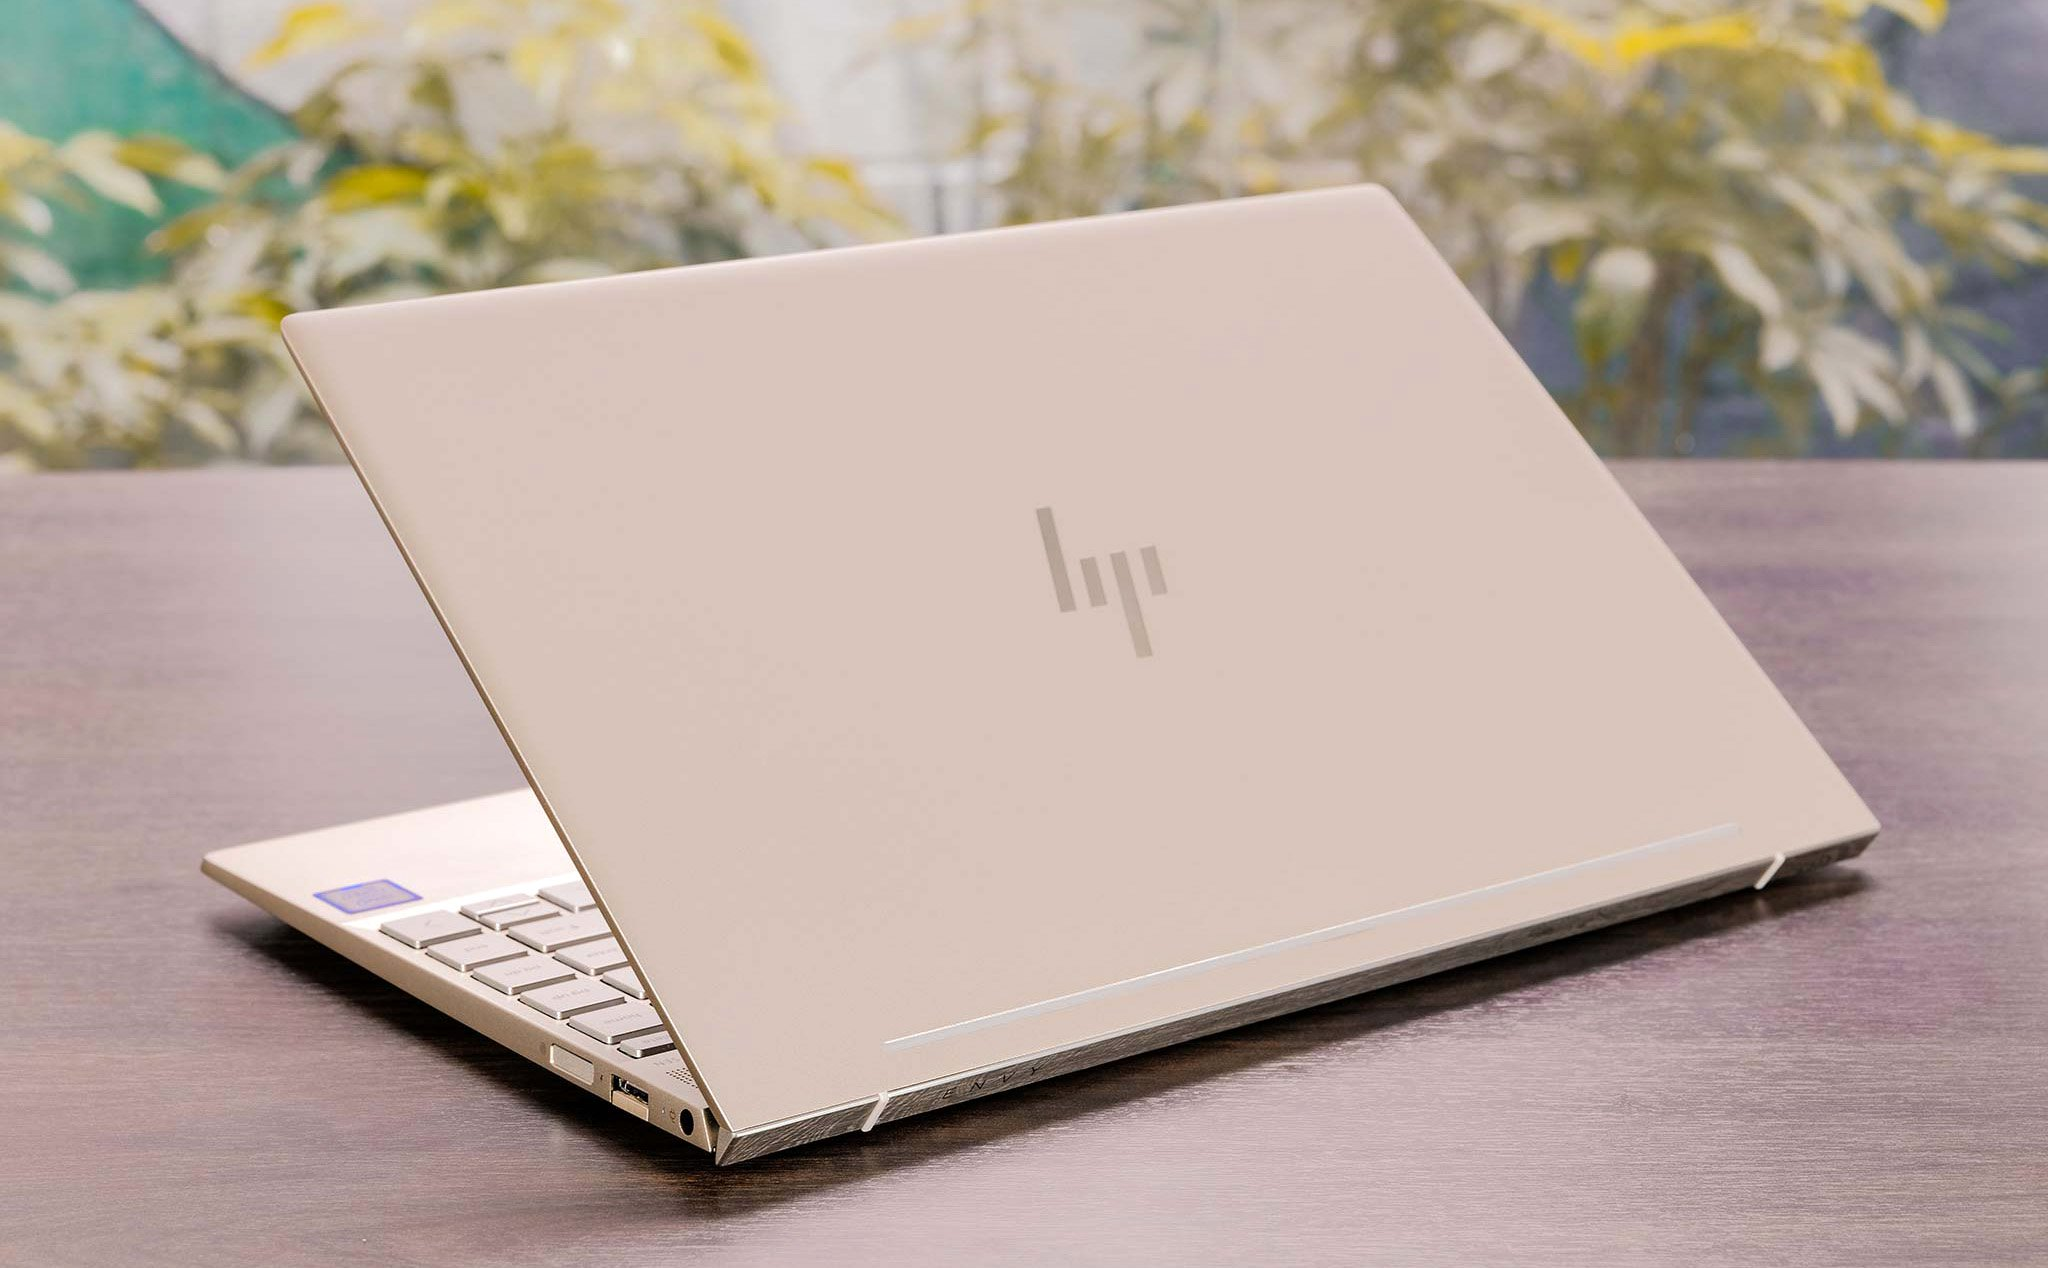 Laptop HP Envy 13 Mode 2018-8.jpg